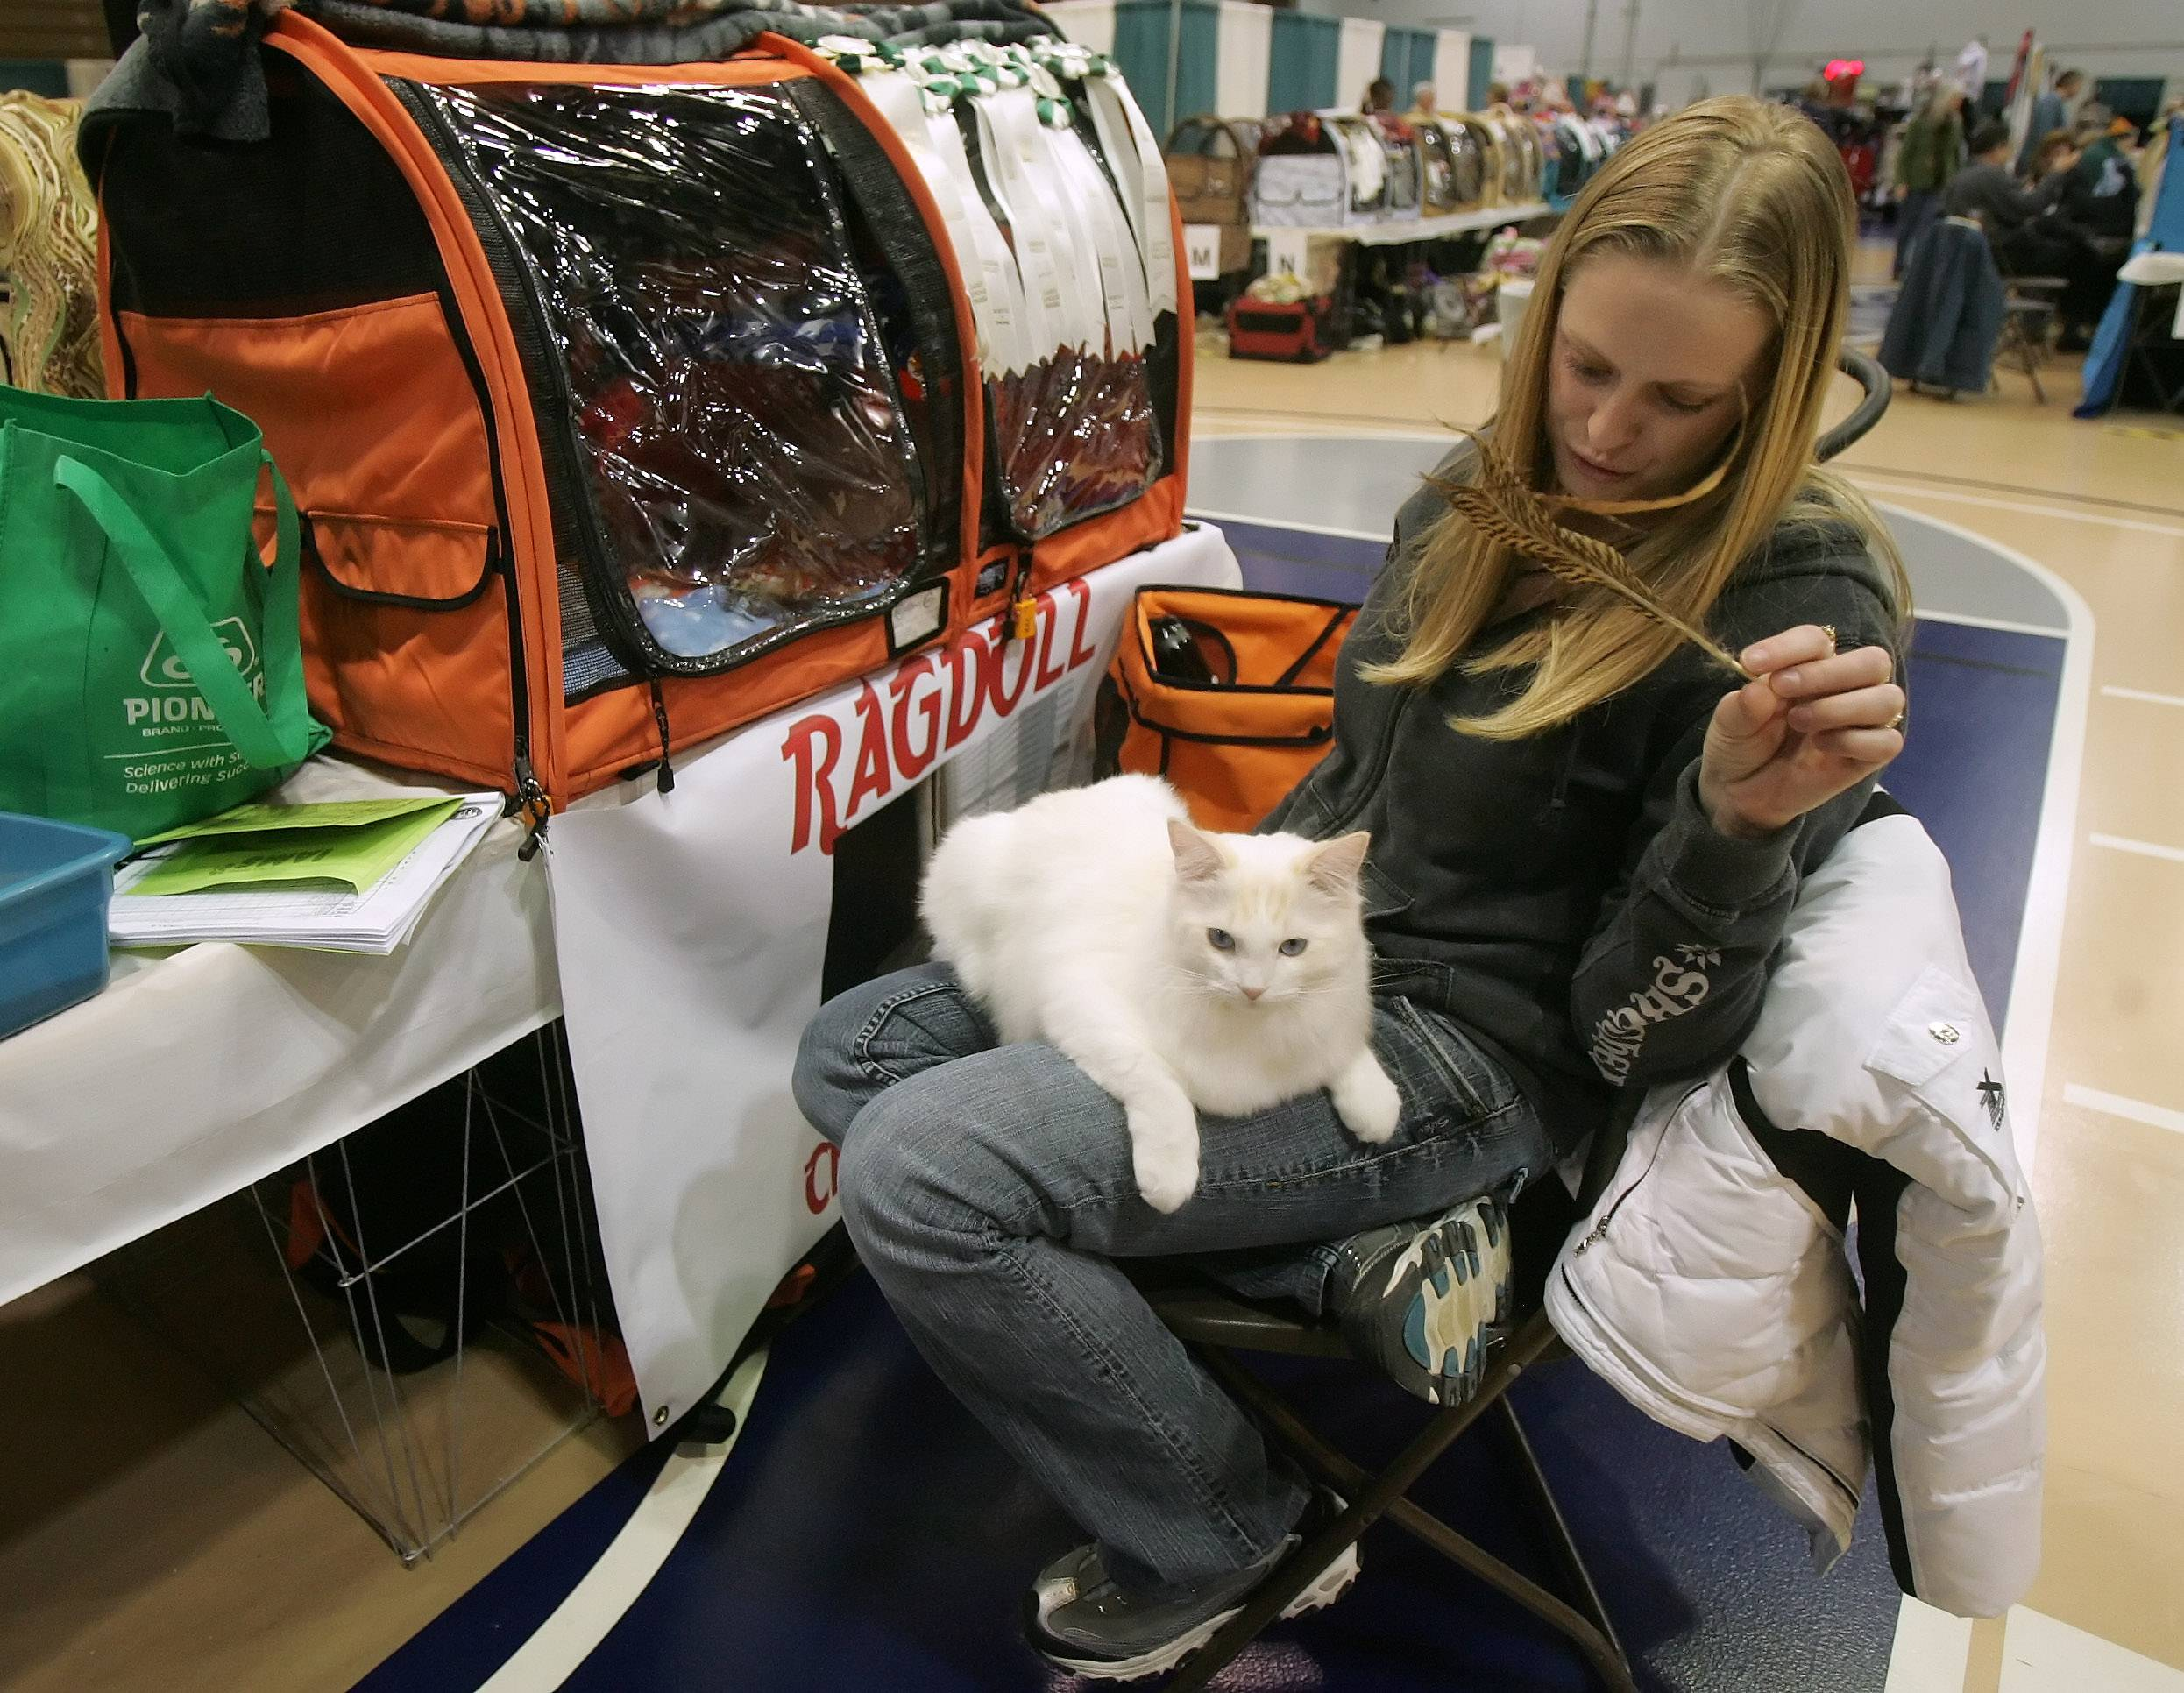 Ashley Michelson of Des Moines, Iowa, plays with Celestrail Otis, a Ragdoll cat, during the 53rd annual Lincoln State Cat Show, which is being held this year at the Kane County Fairgrounds in St. Charles.